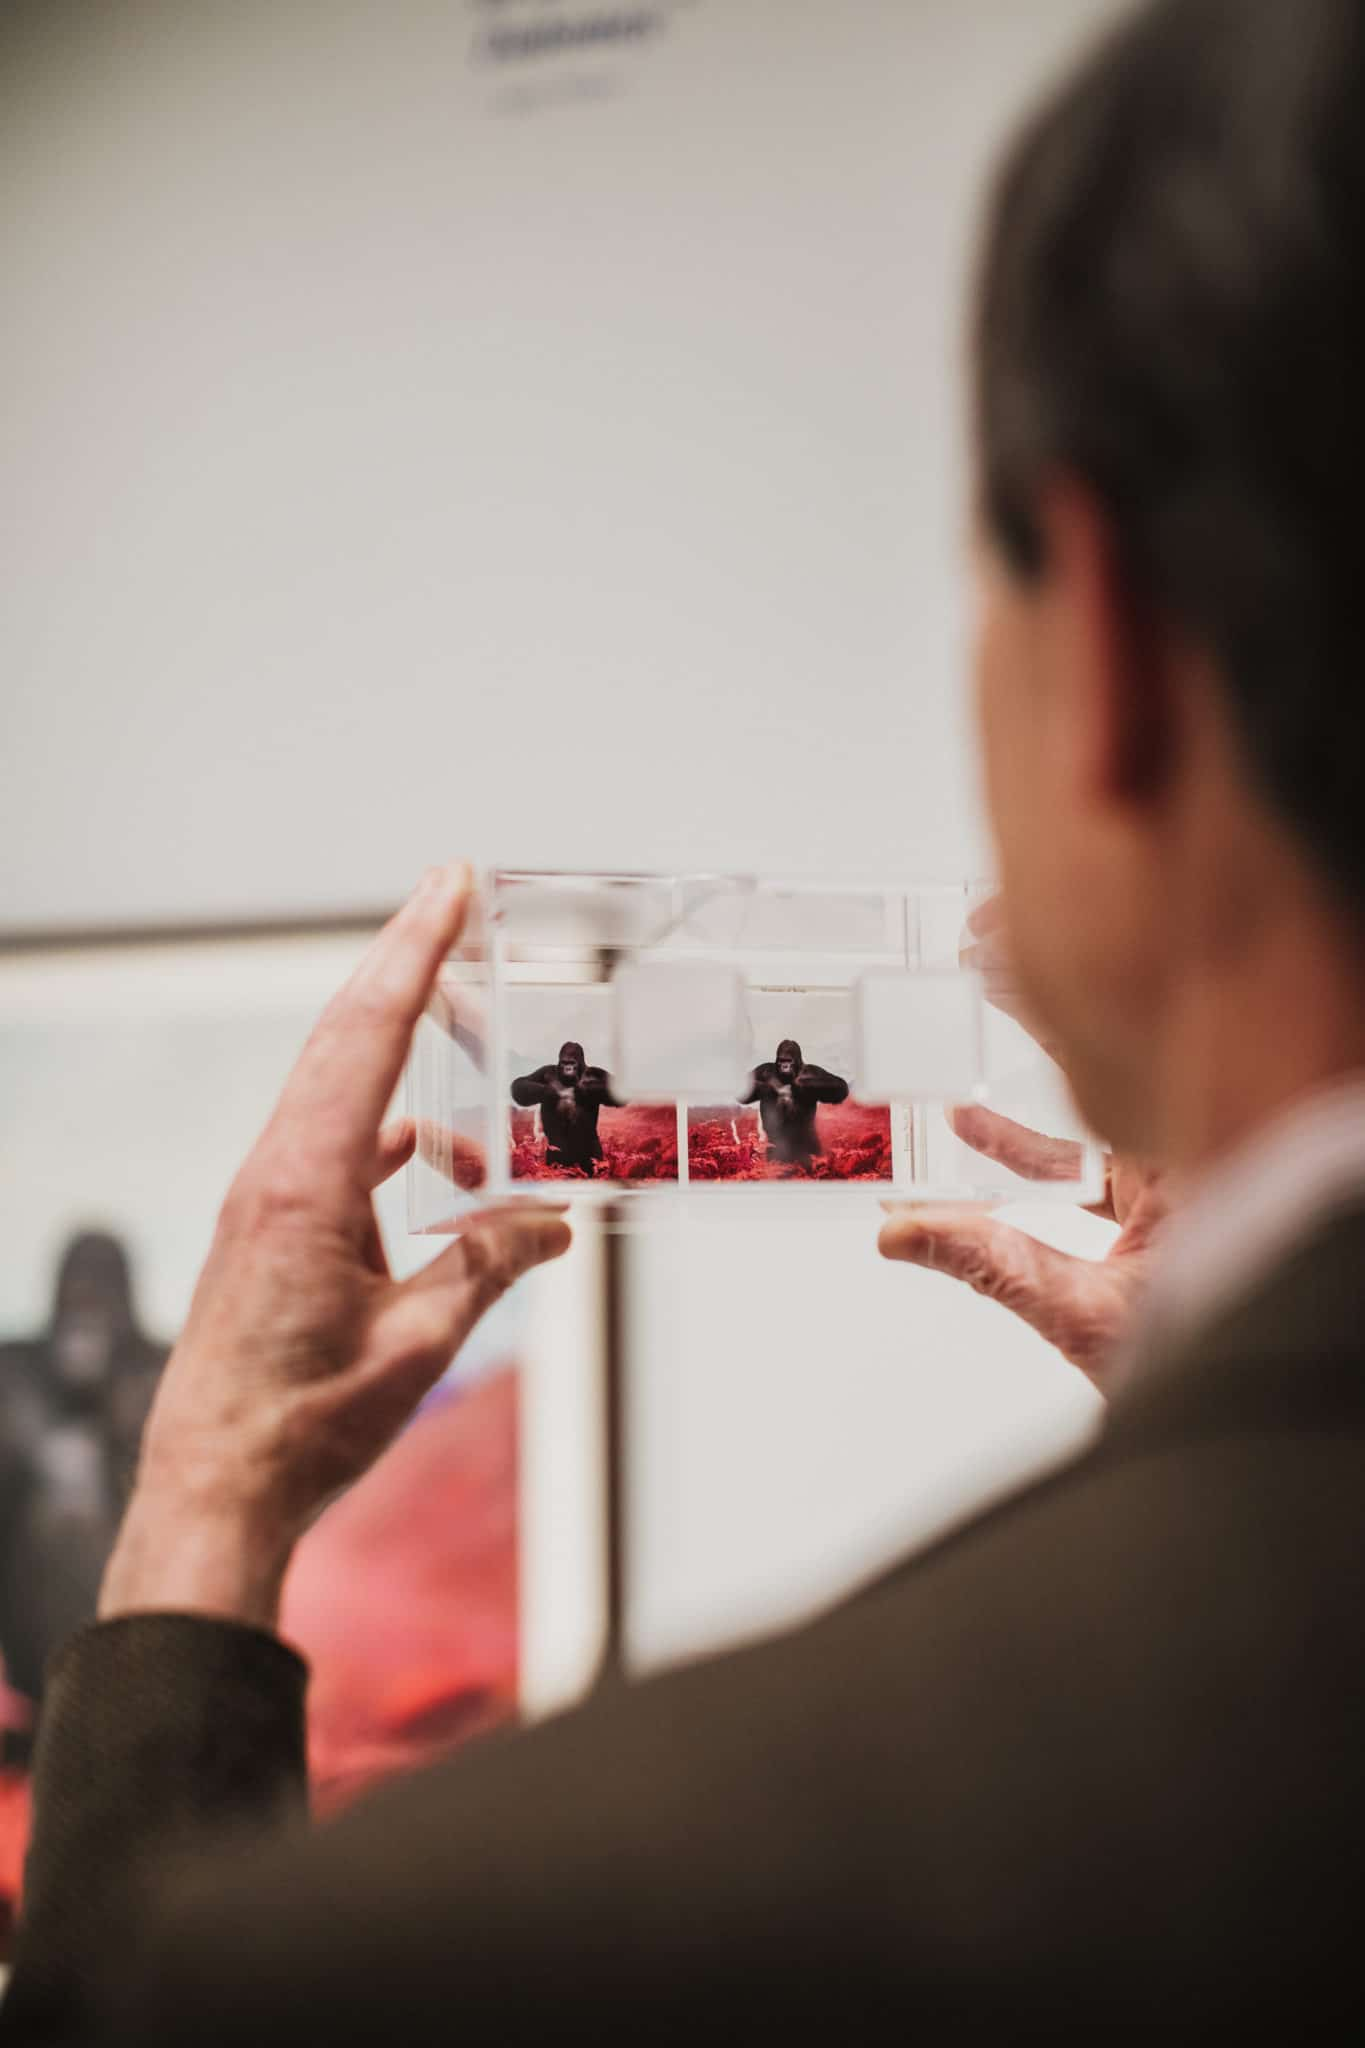 Best San Diego Museums: A man looks at a photo at the Museum of Photographic Arts.